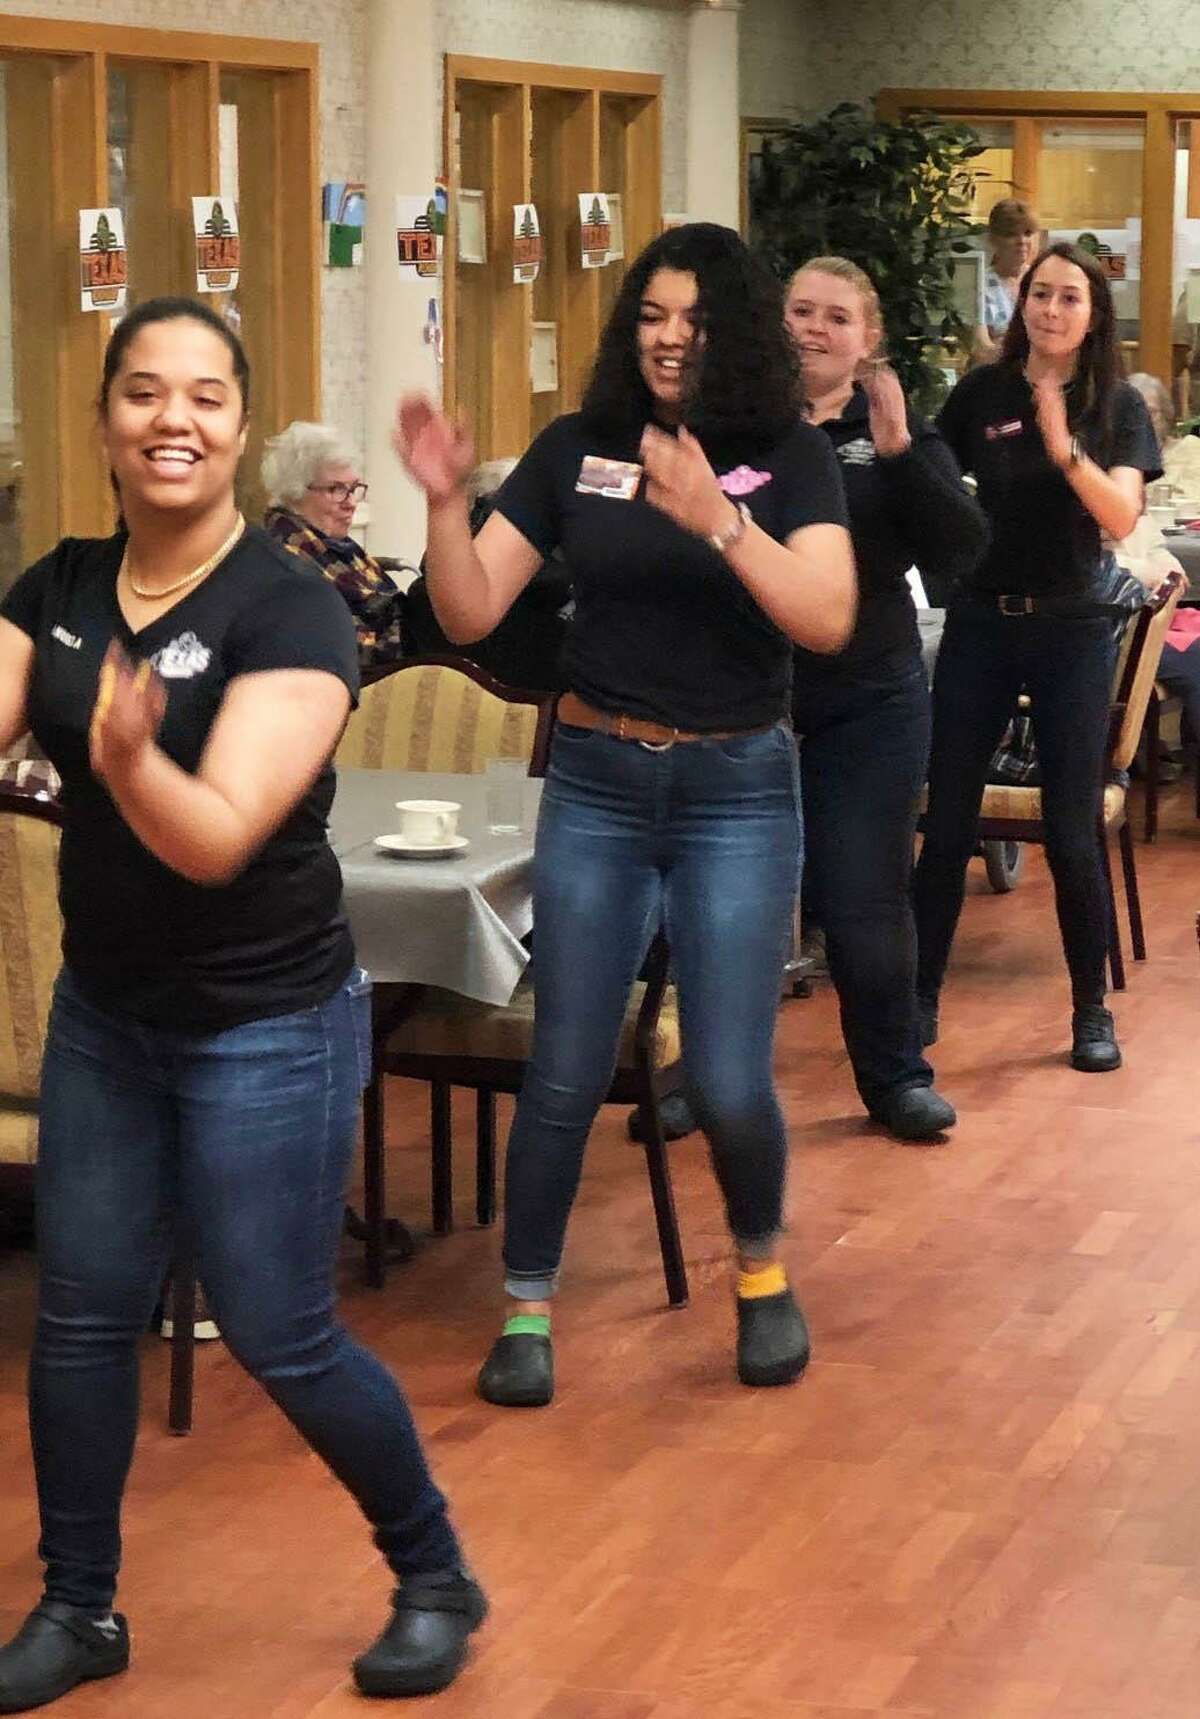 Servers from the Danbury Texas Roadhouse, from front to back, Manuela Aleman, Raquel Howard Kaitlyn O'Hara and Mikayla Ramos, kick off lunch with line dancing.